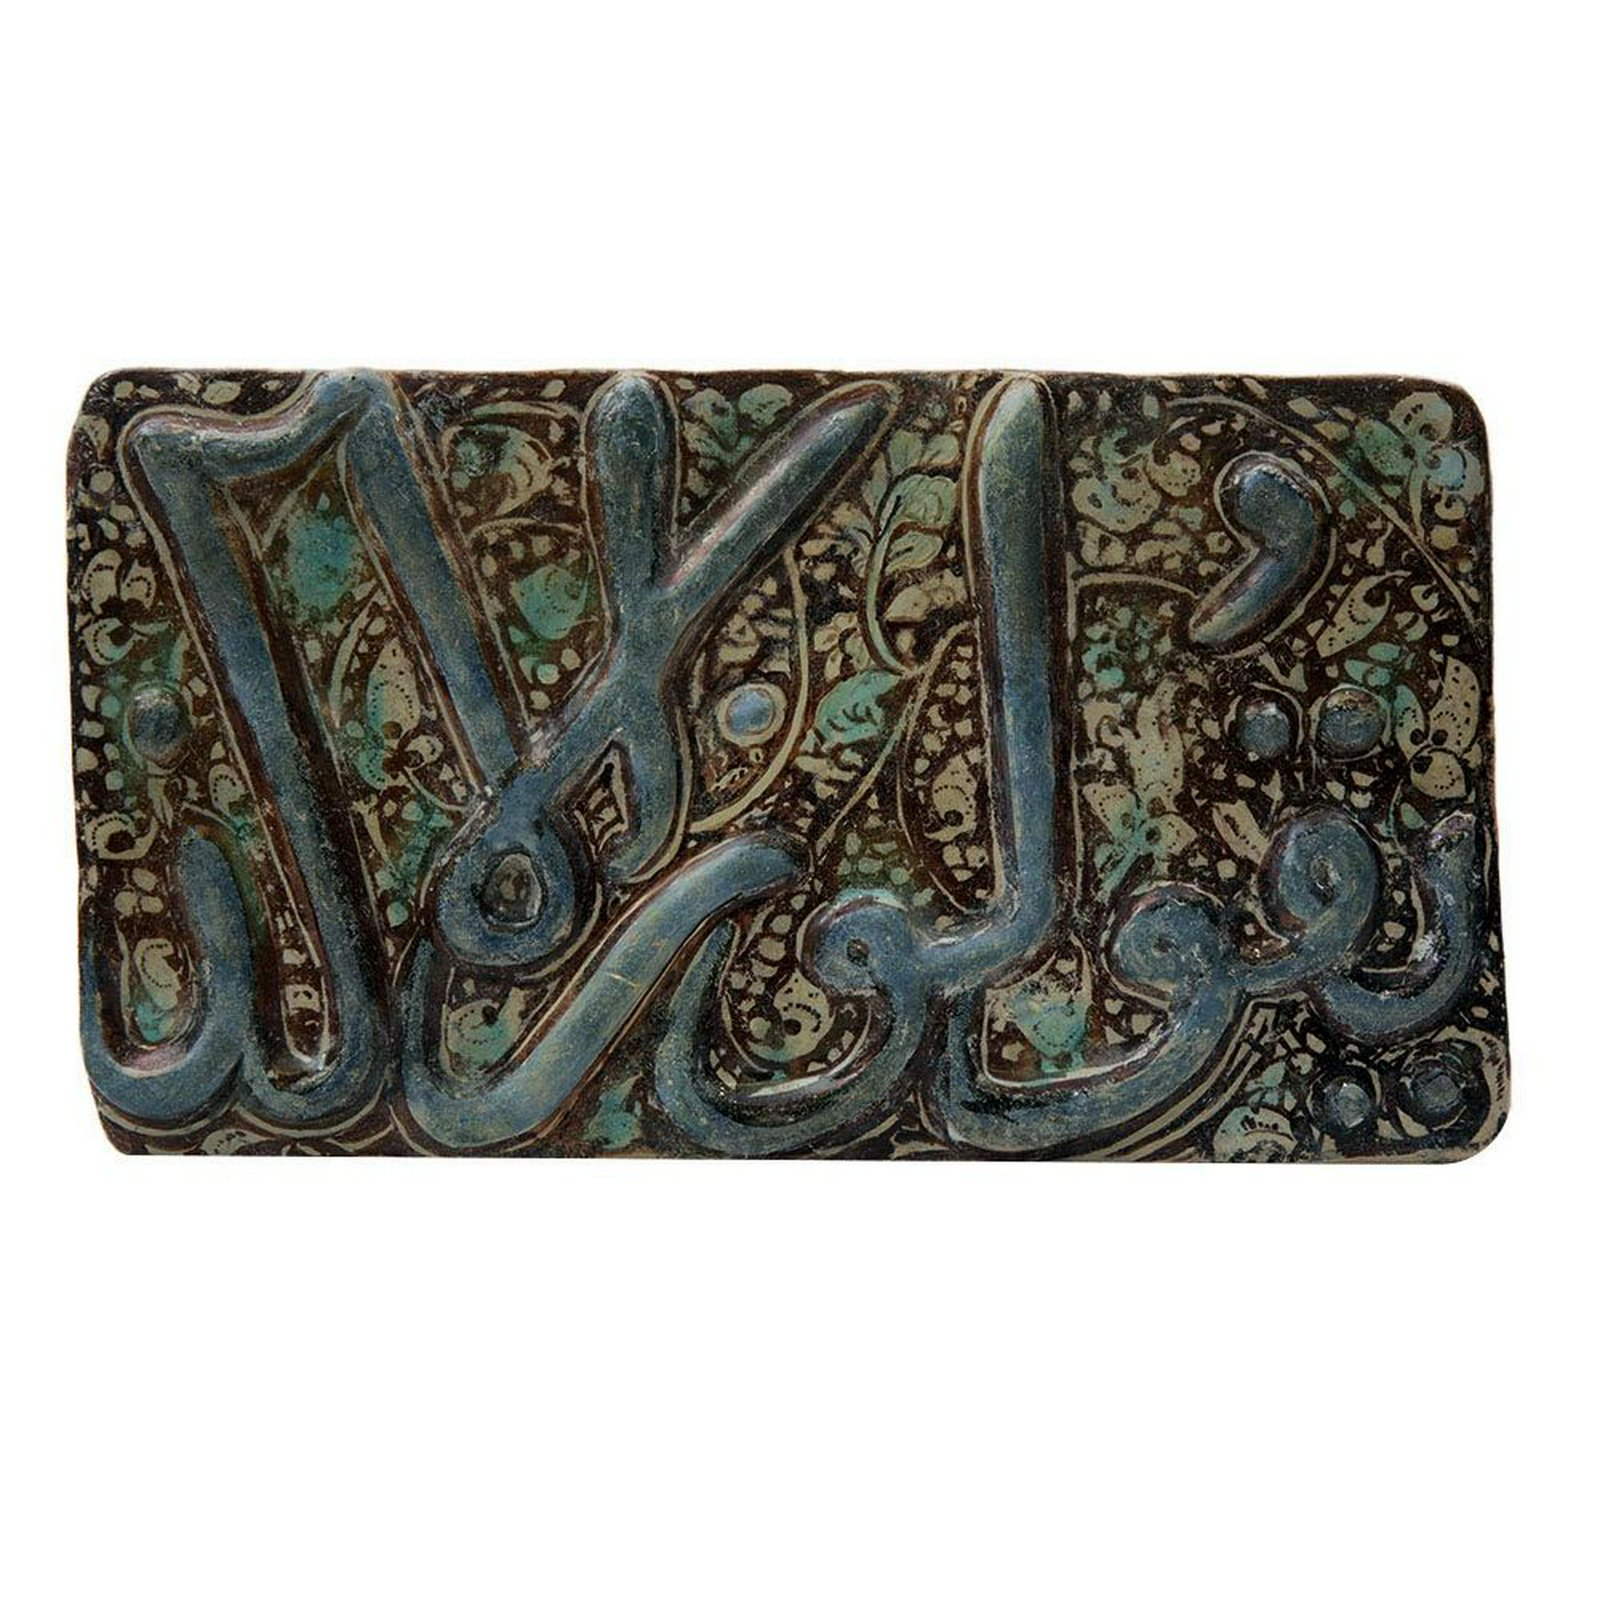 Ancient Persian Luster ware Islamic Ceramic Tile With